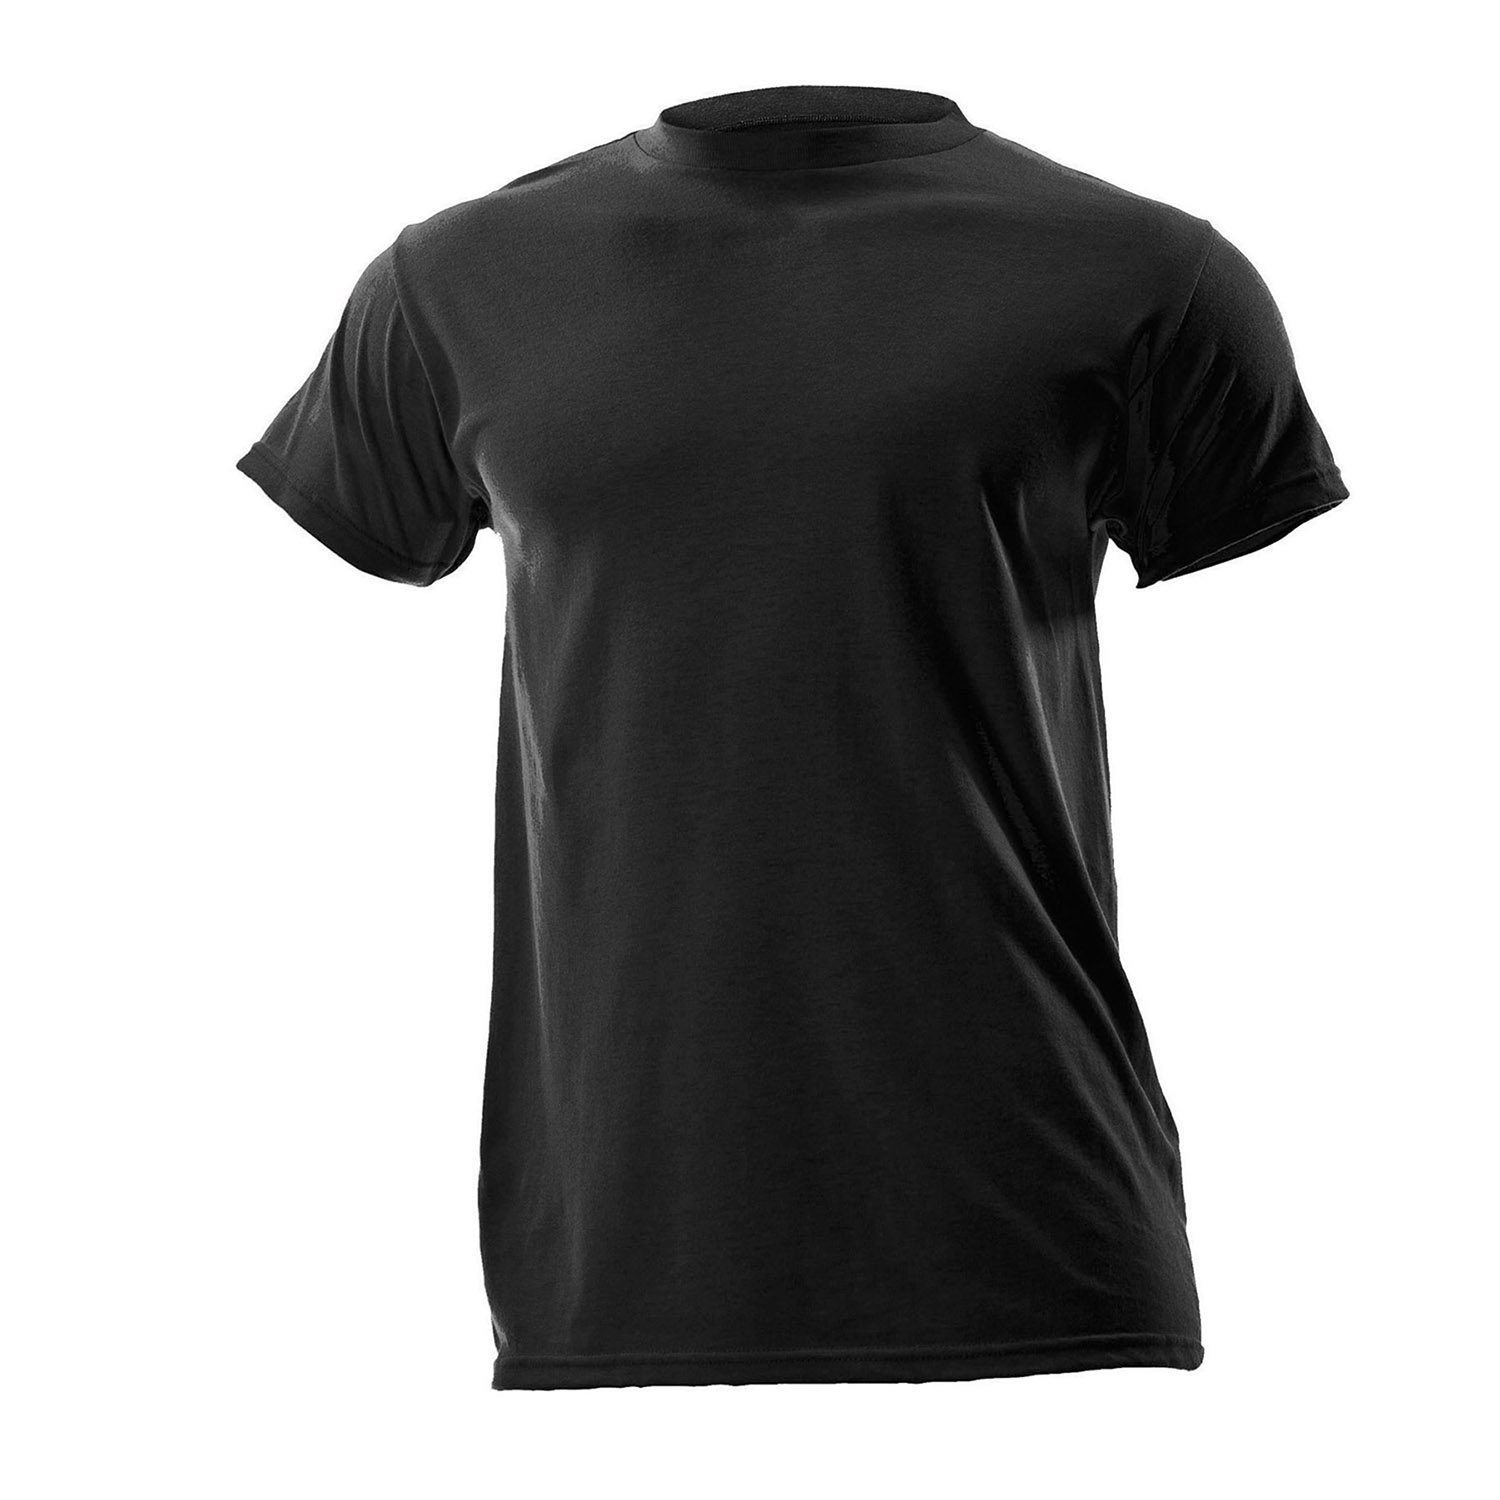 DRIFIRE Lightweight Short Sleeve T-Shirt